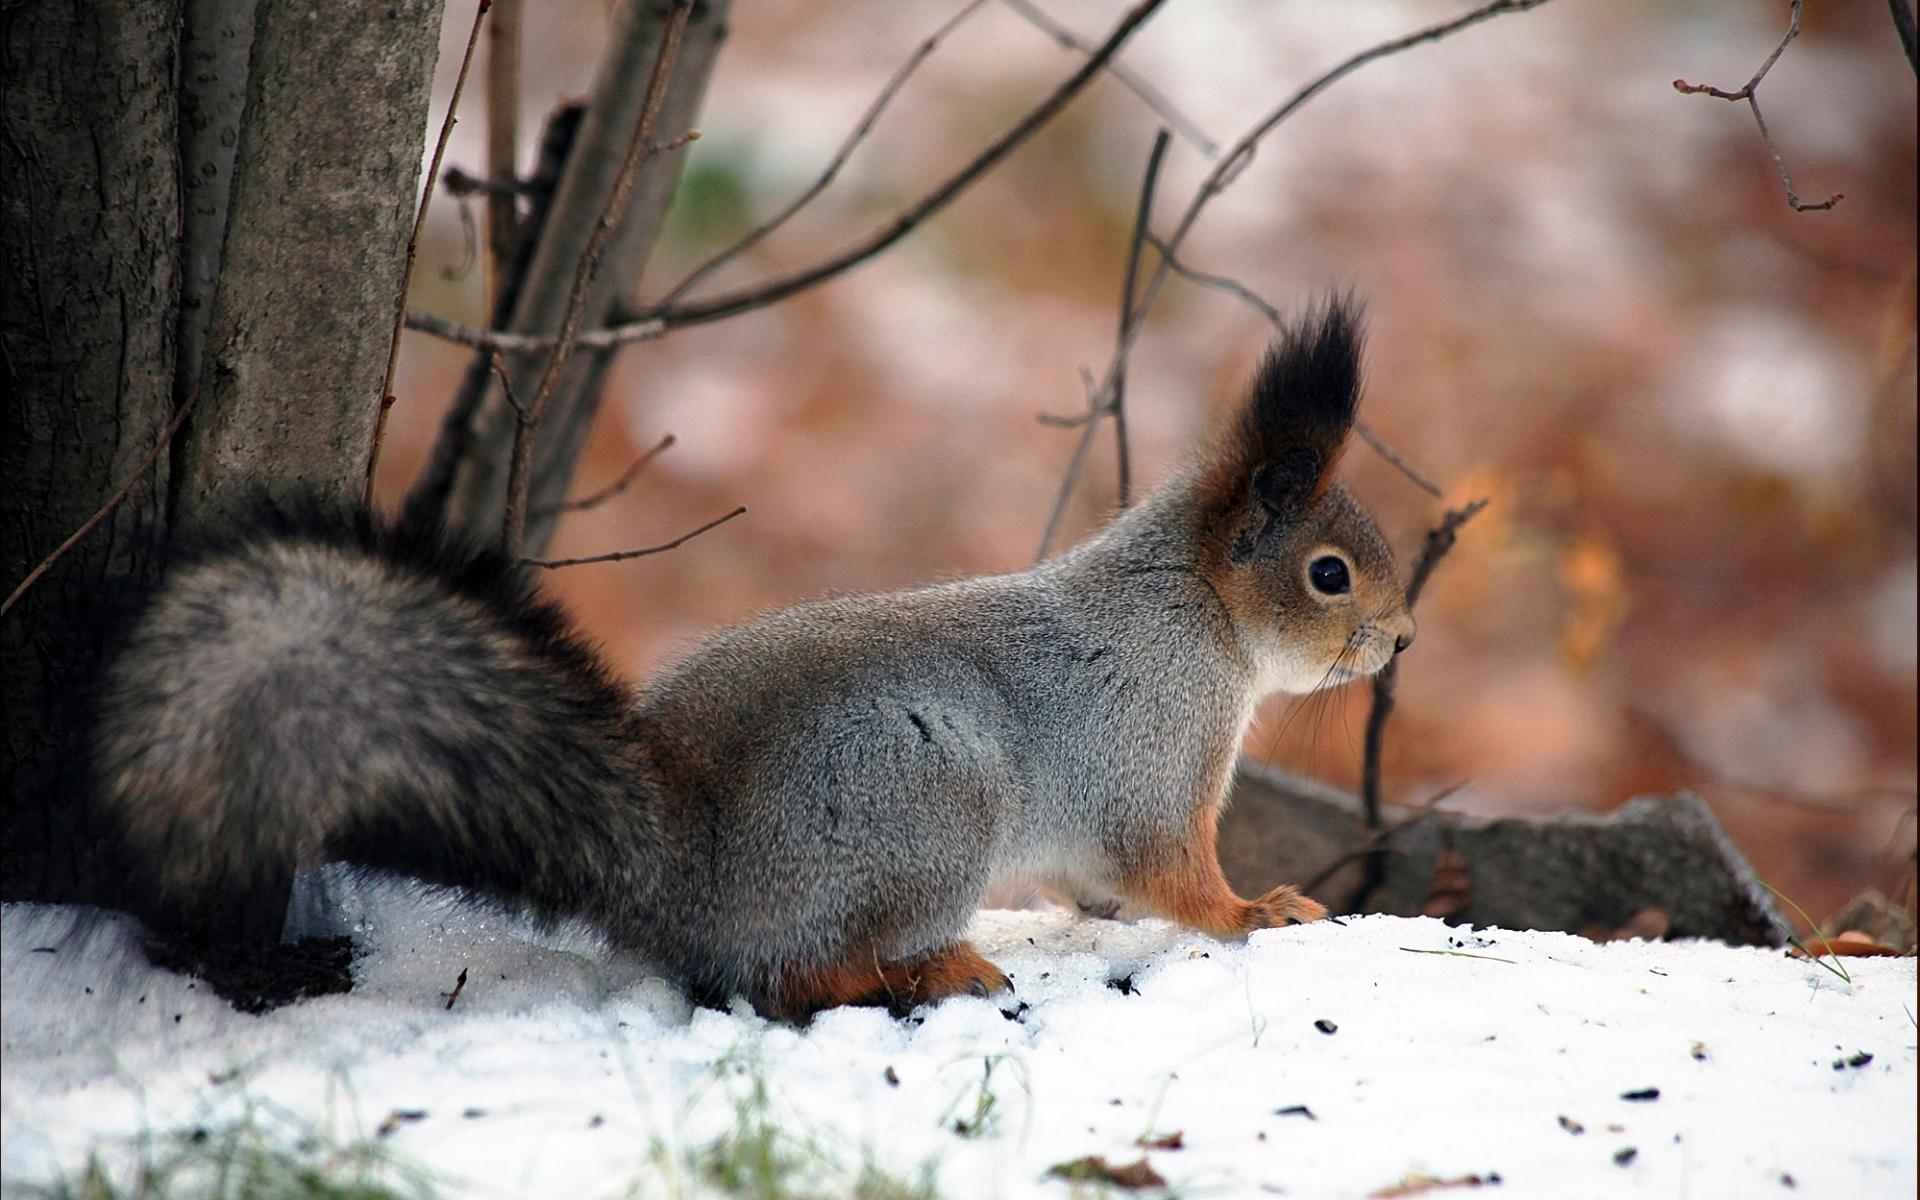 40797 download wallpaper Animals, Squirrel screensavers and pictures for free